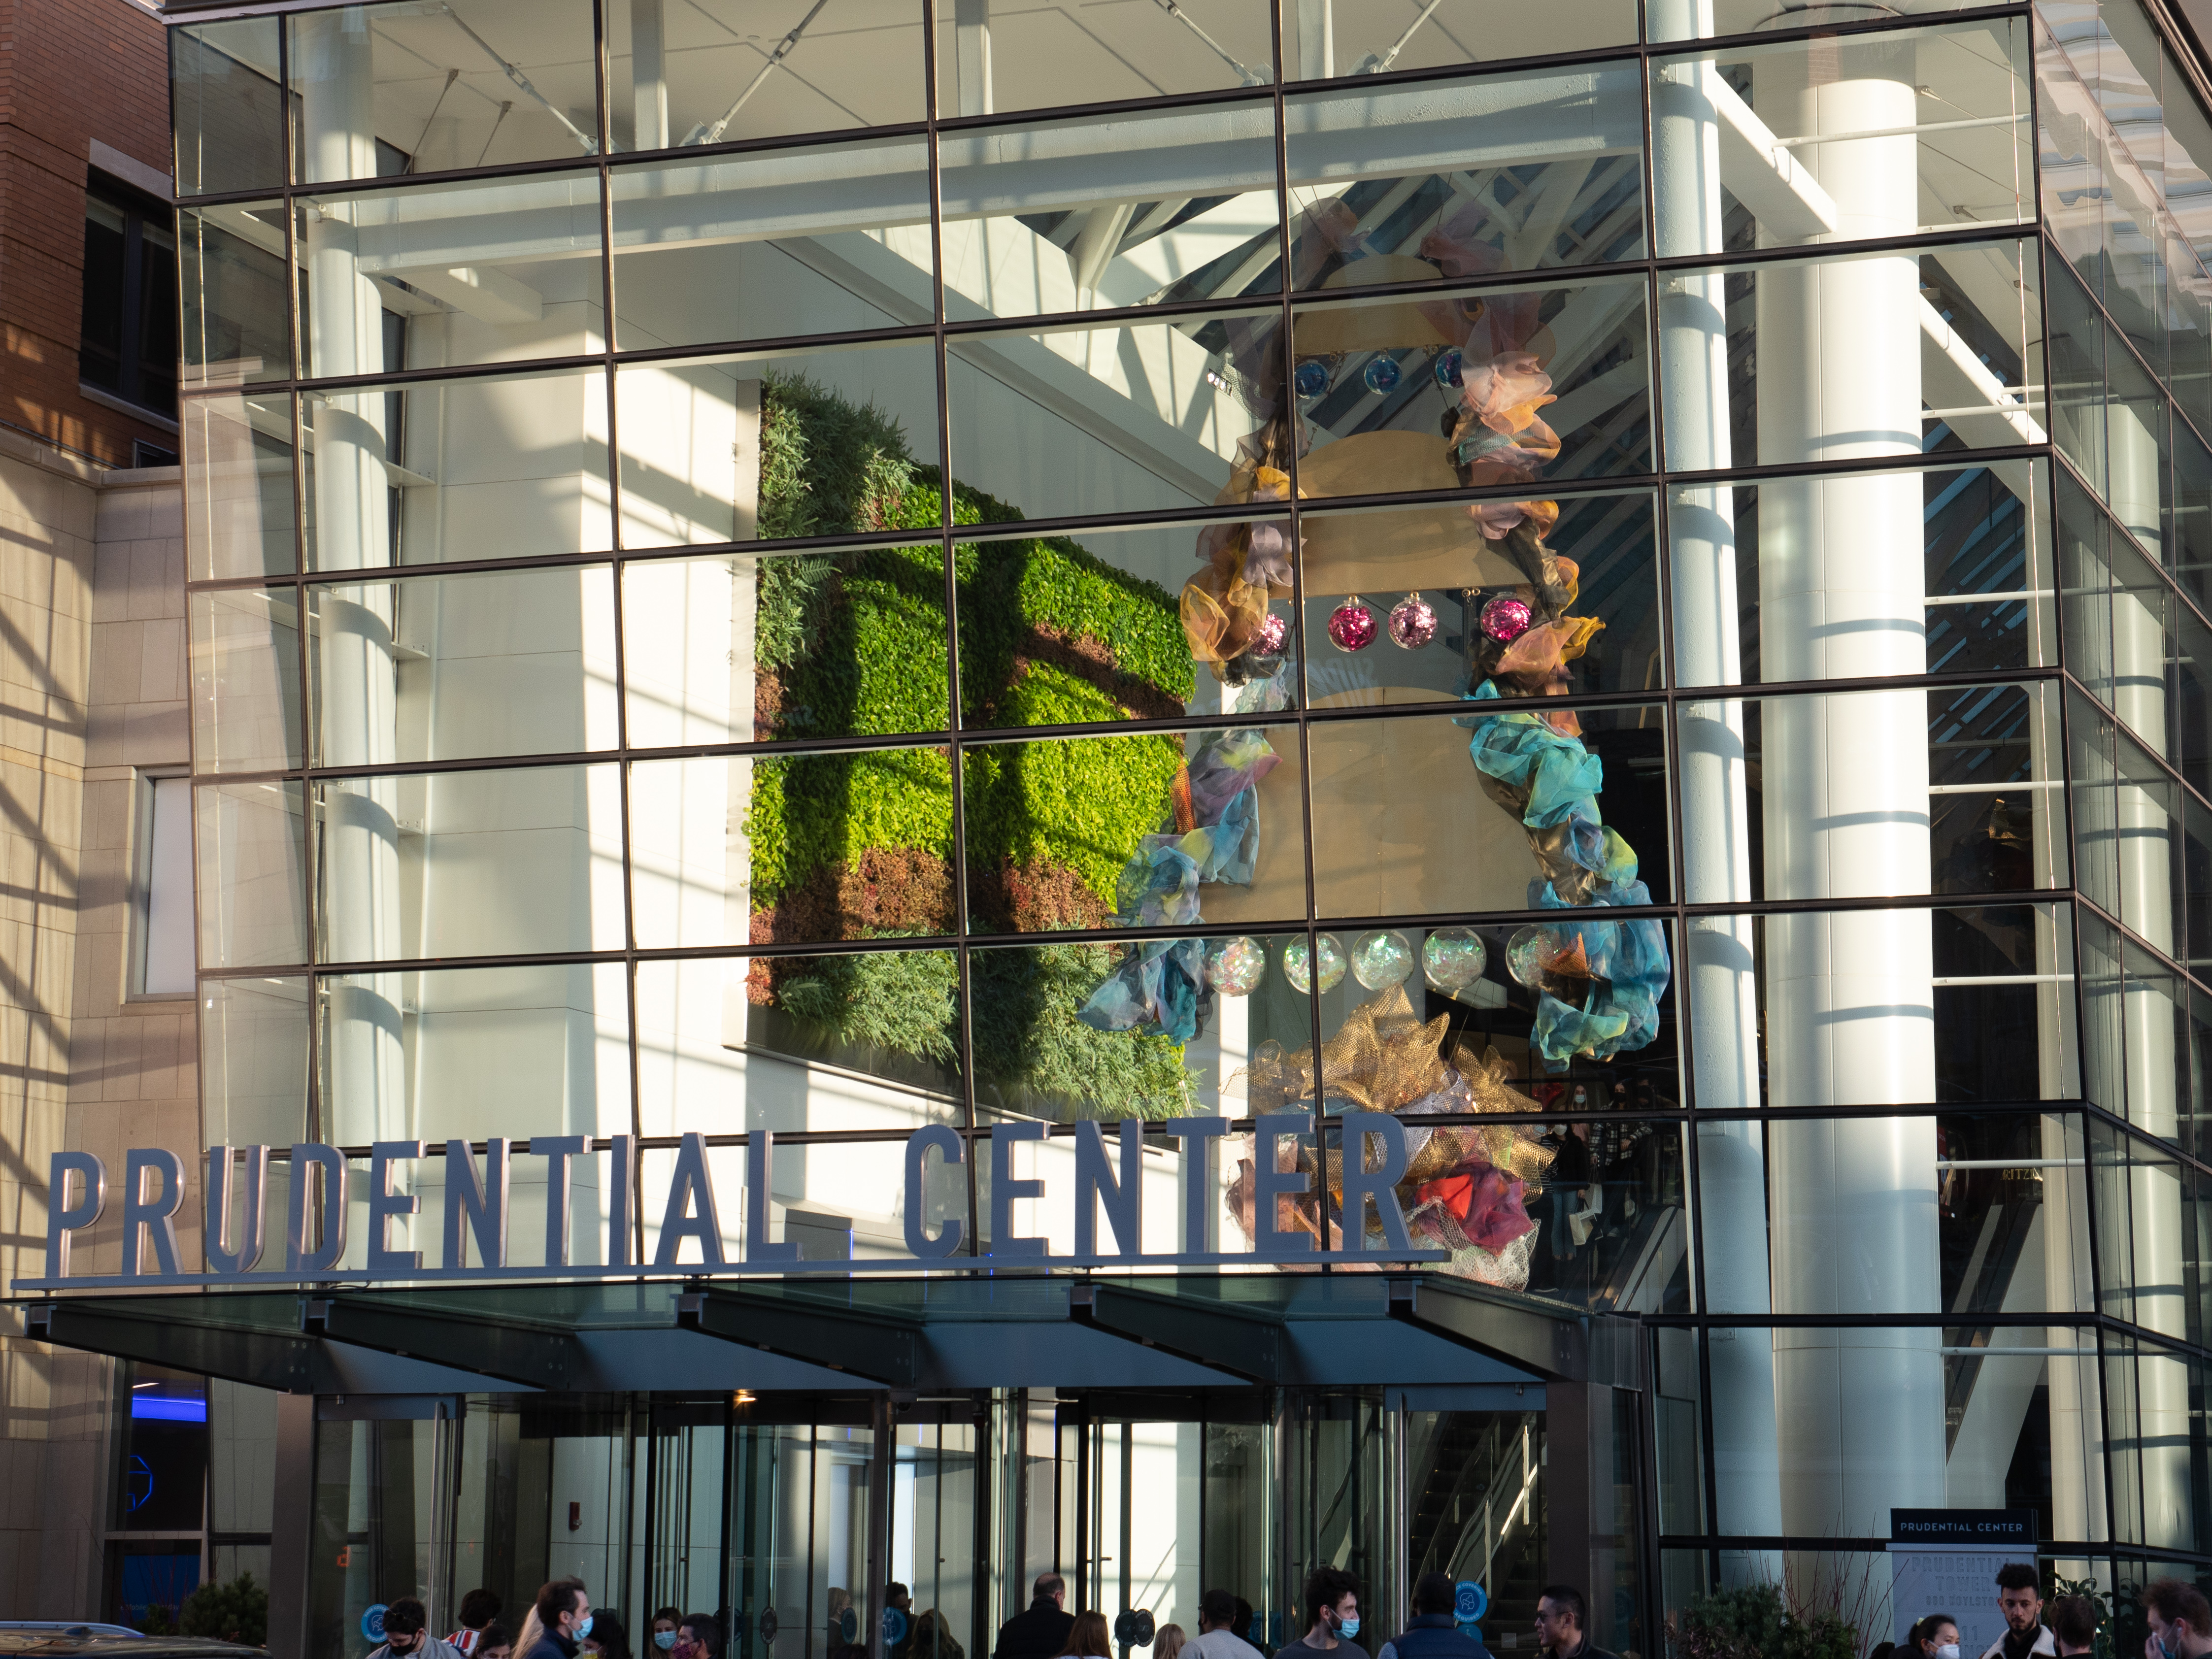 """Three half circles with a border of mesh hanging one on top of the other with blue, pink, and translucent mirror balls. A mesh ball hangs below the half circles. The sculpture can be seen through a glass wall behind the """"Prudential Center"""" sign."""